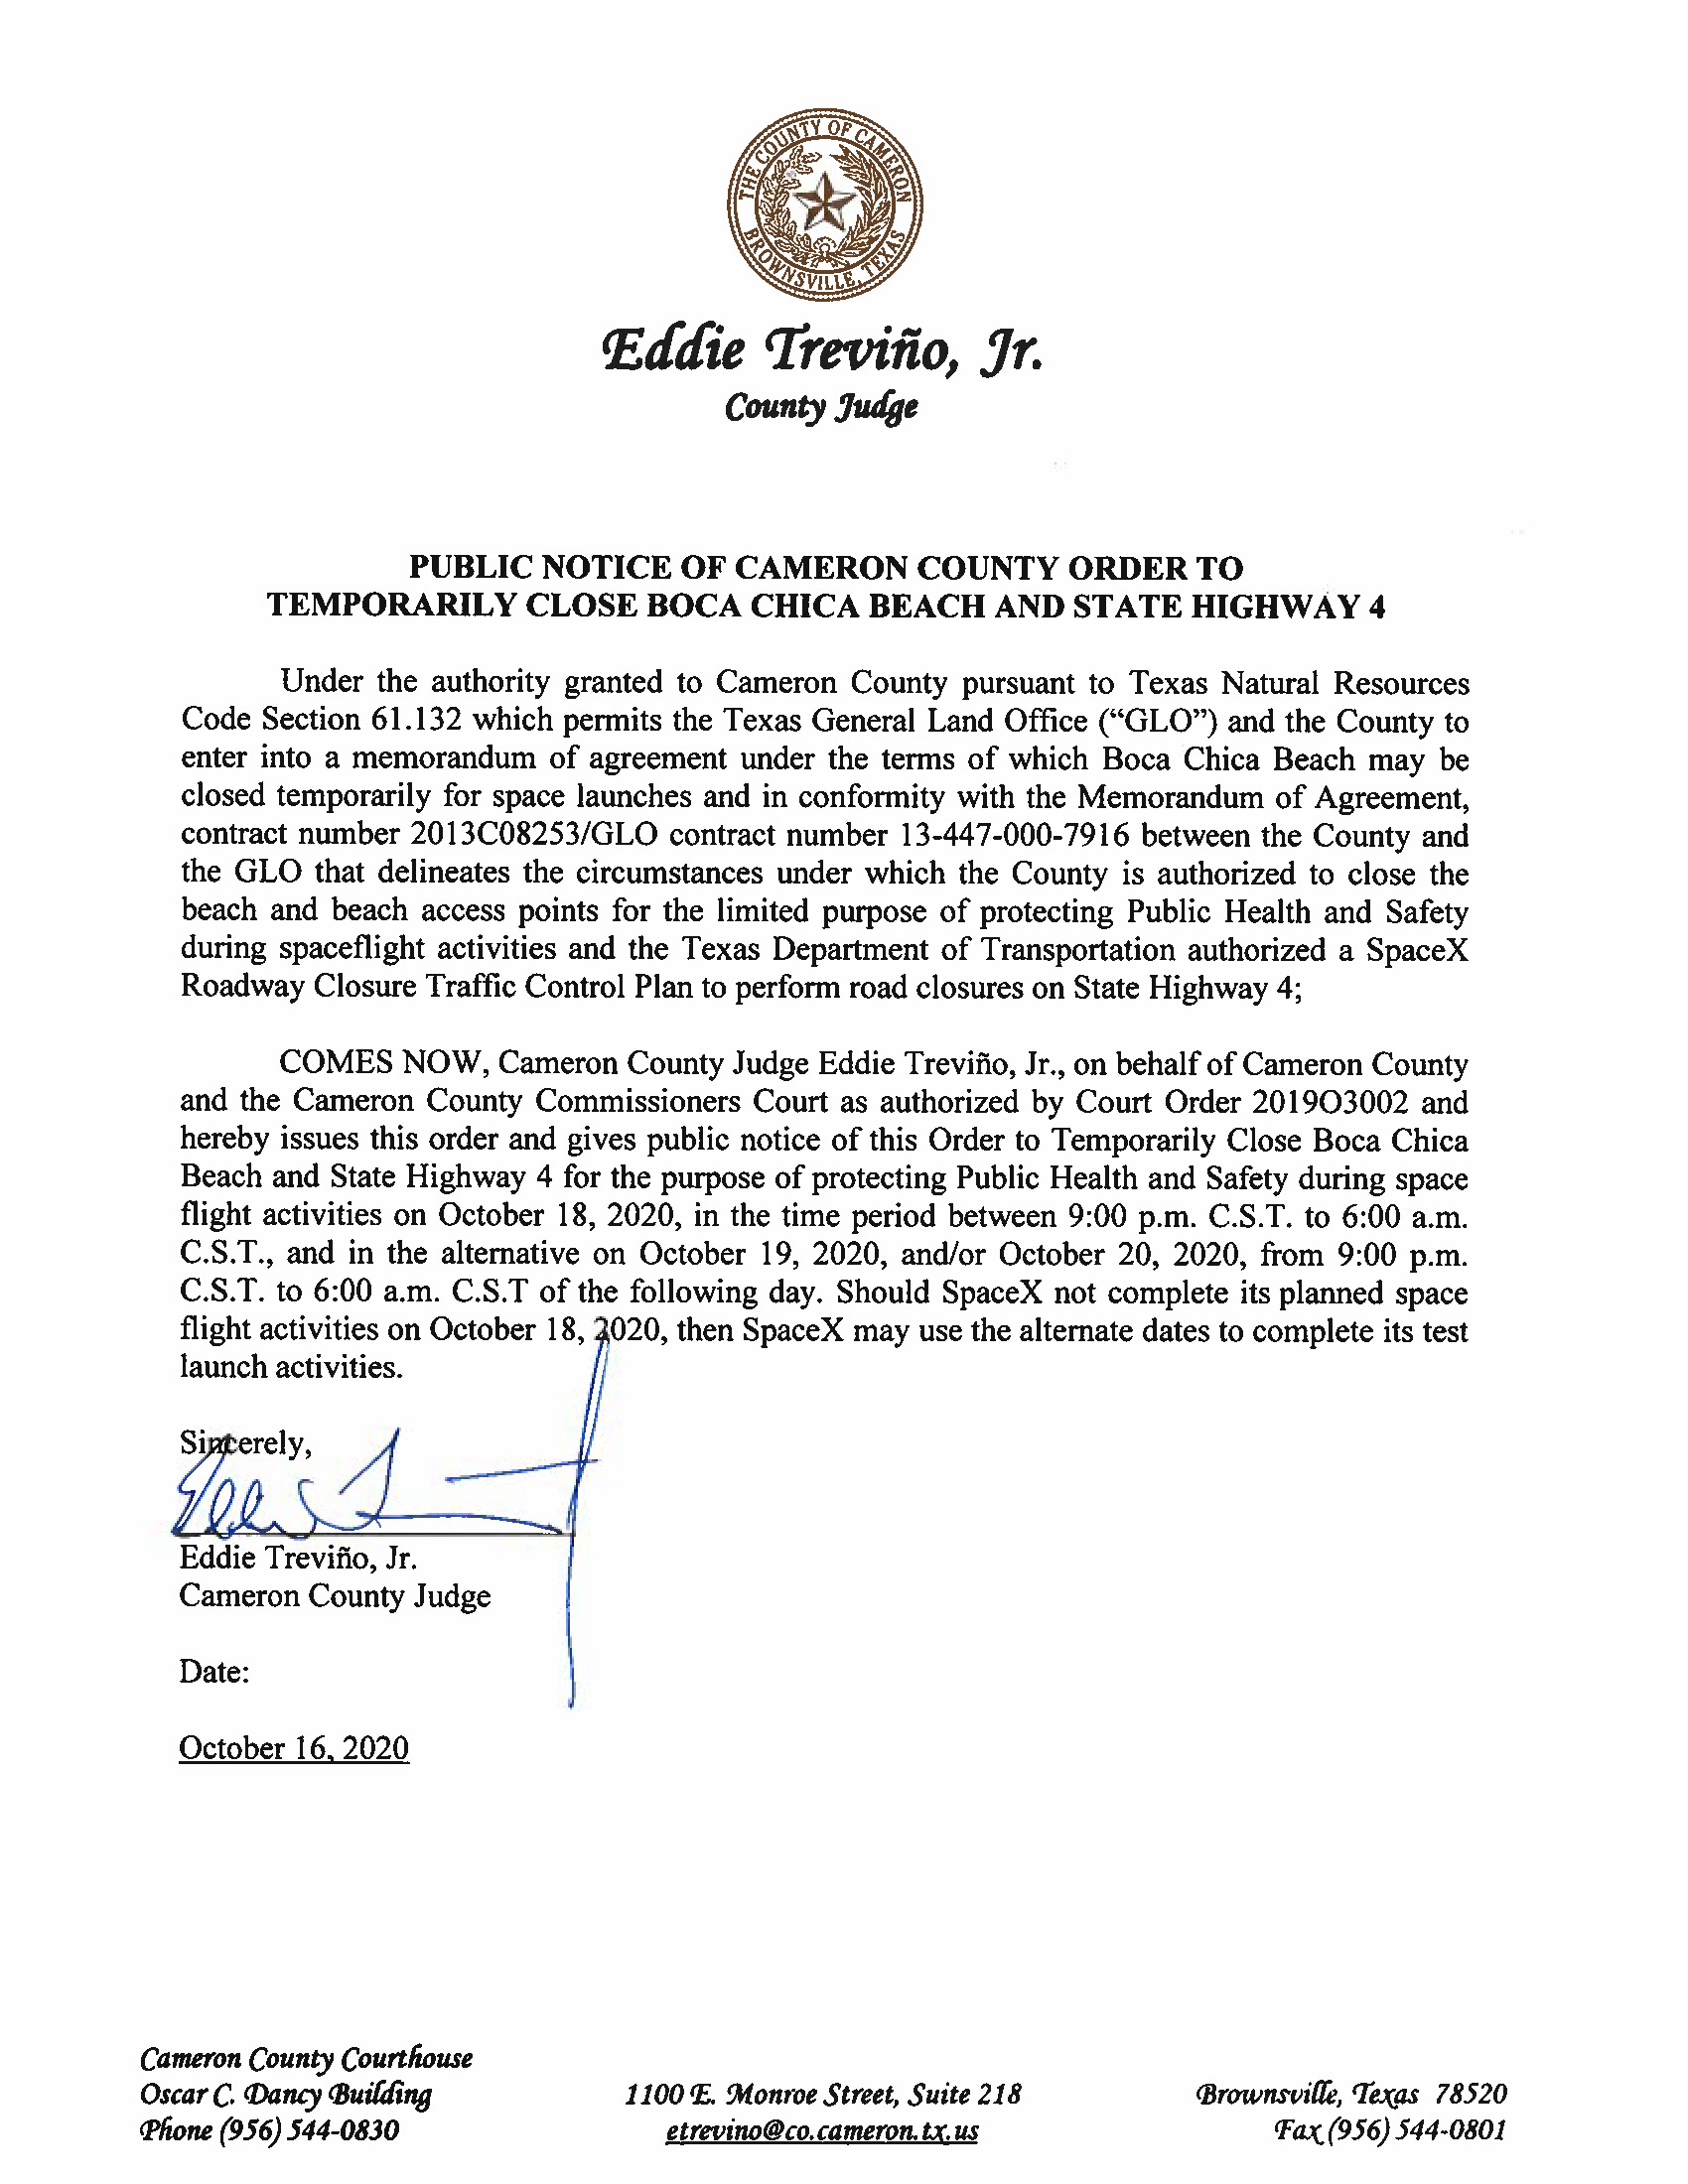 PUBLIC NOTICE OF CAMERON COUNTY ORDER TO TEMP. BEACH CLOSURE AND HWY.10.18.20 Page 1